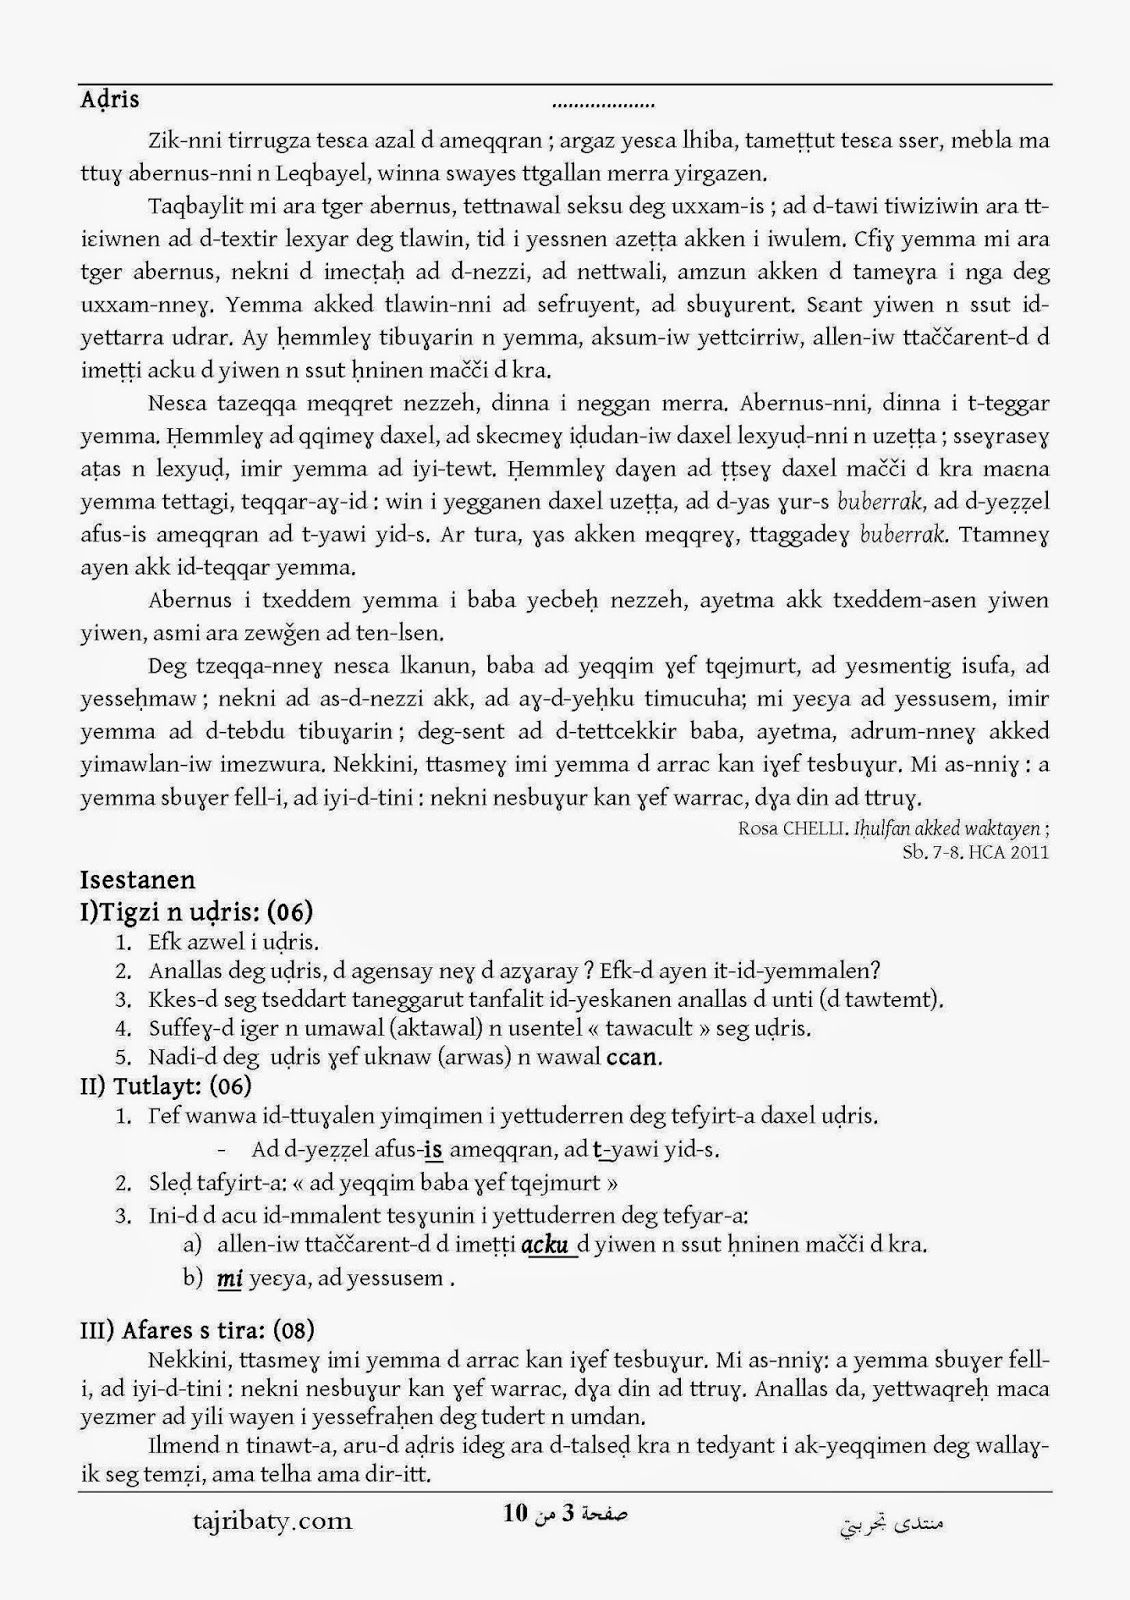 Essay proposal template